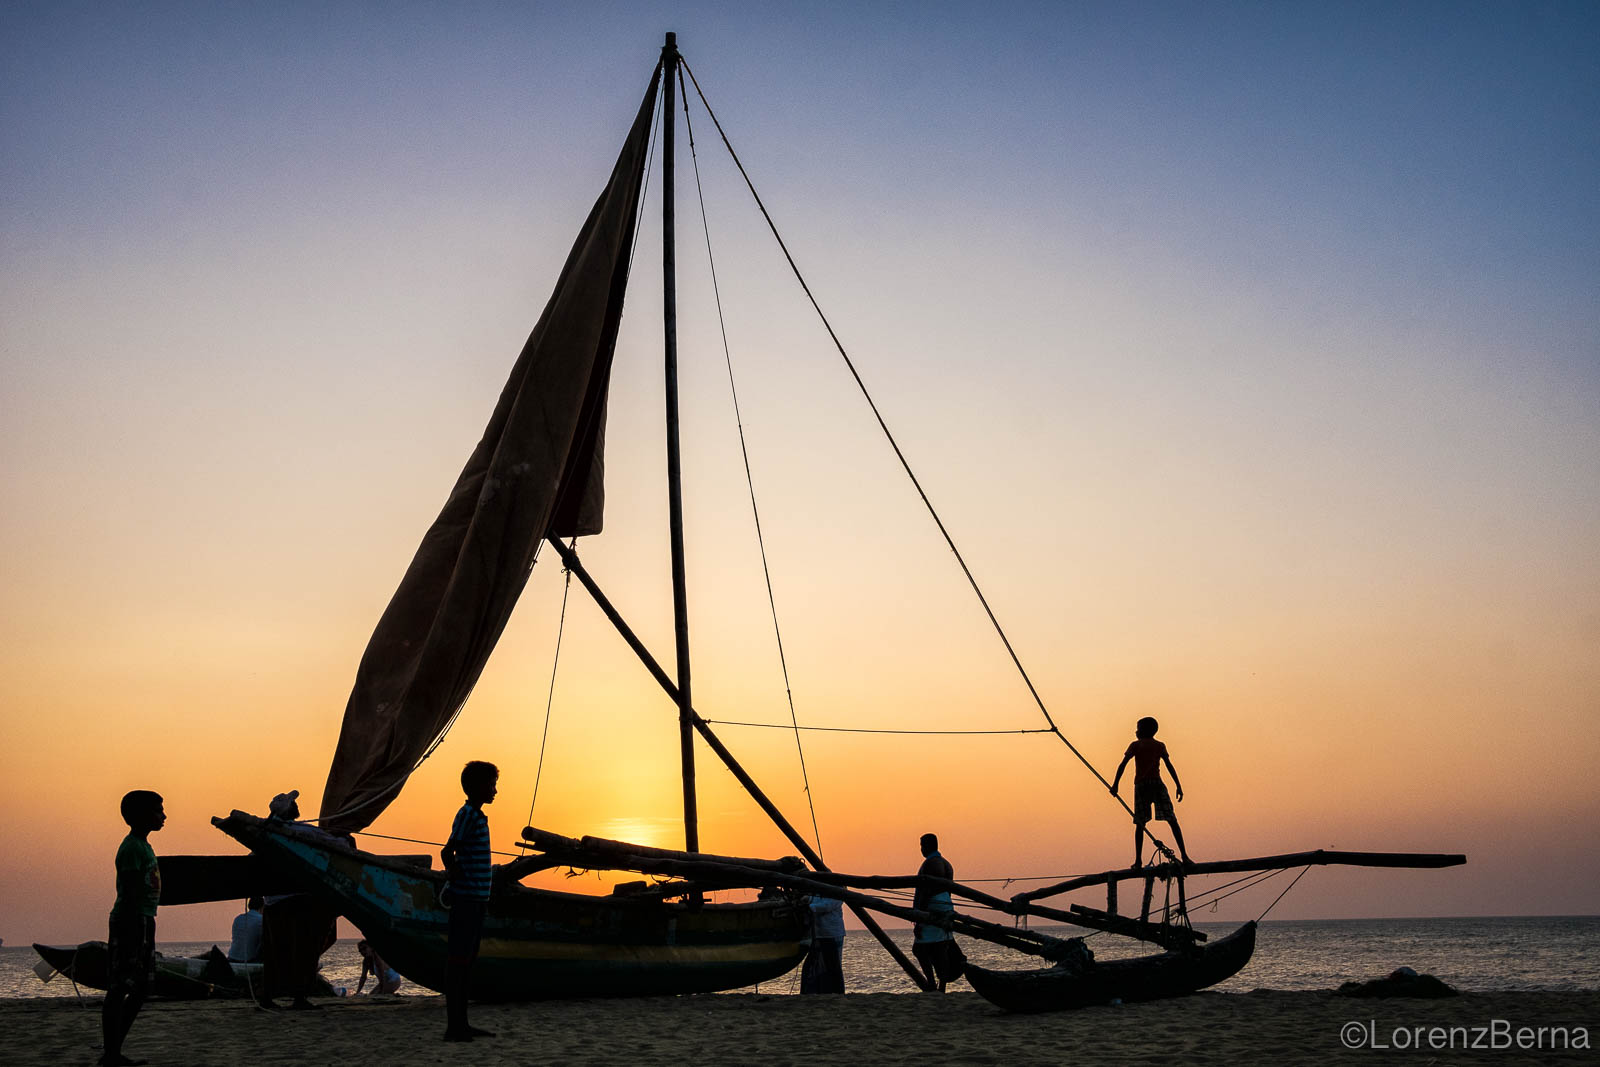 Silhouettes by sunset on Negombo beach - Sri Lanka Travel Photography by Lorenz Berna